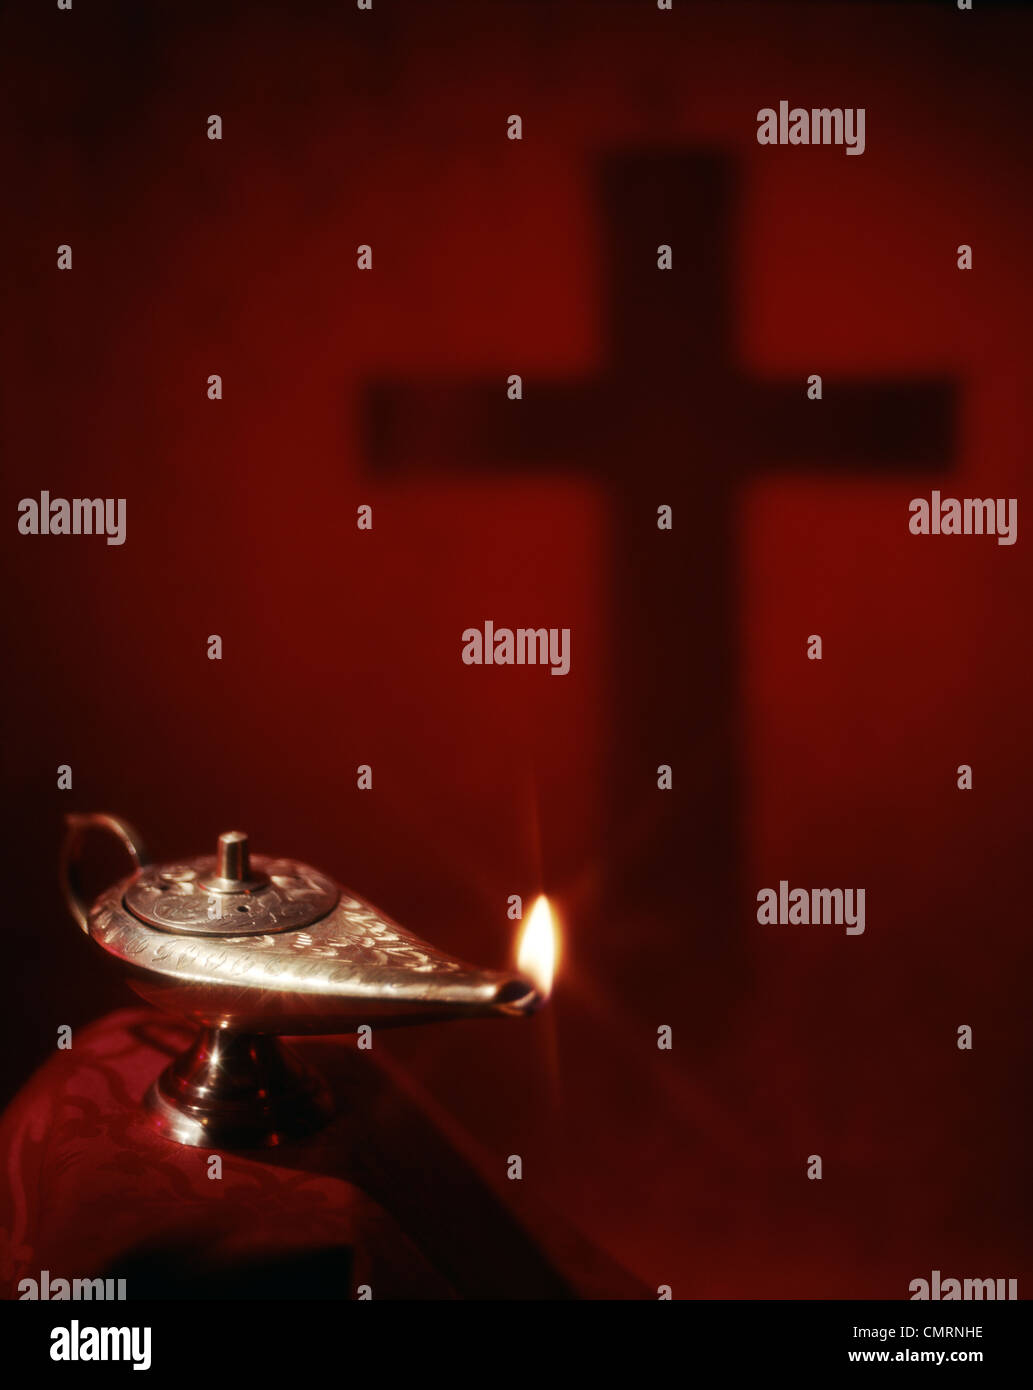 FLAME IN BRASS LAMP OF KNOWLEDGE AND SHADOW OF CROSS ON RED BACKGROUND - Stock Image